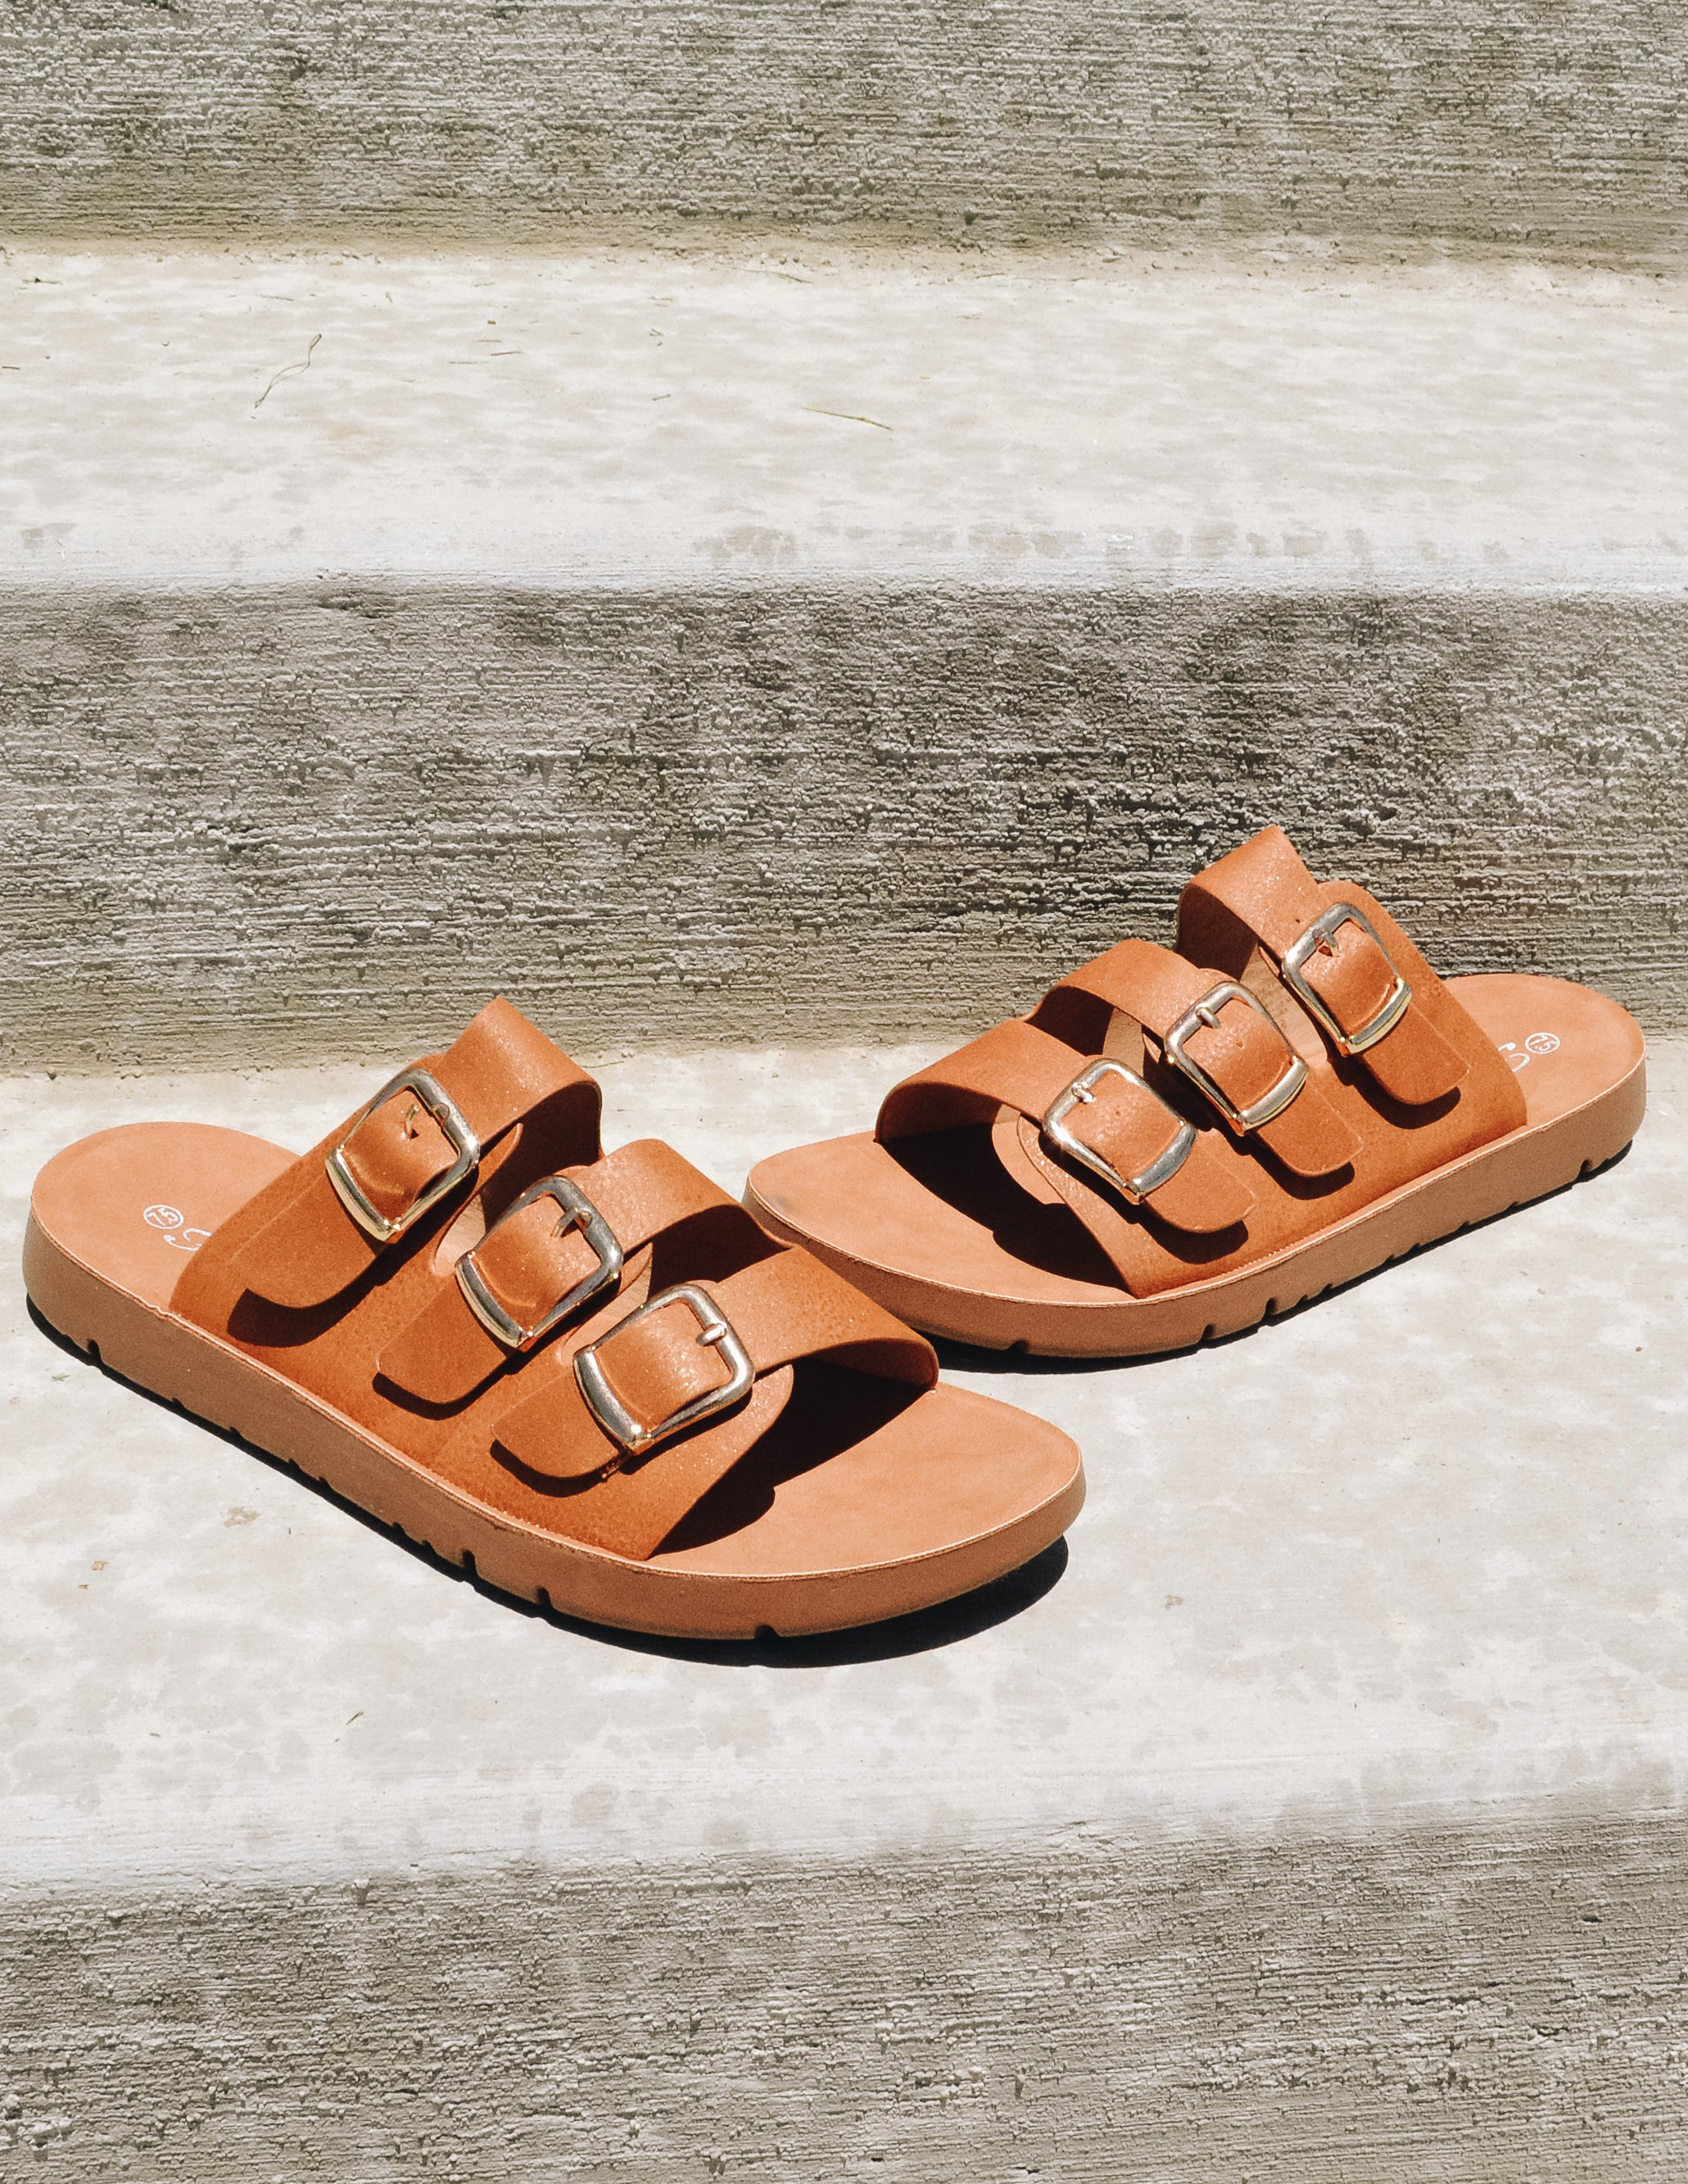 Tan sandals with three buckle straps outside on concrete steps - elle bleu shoes